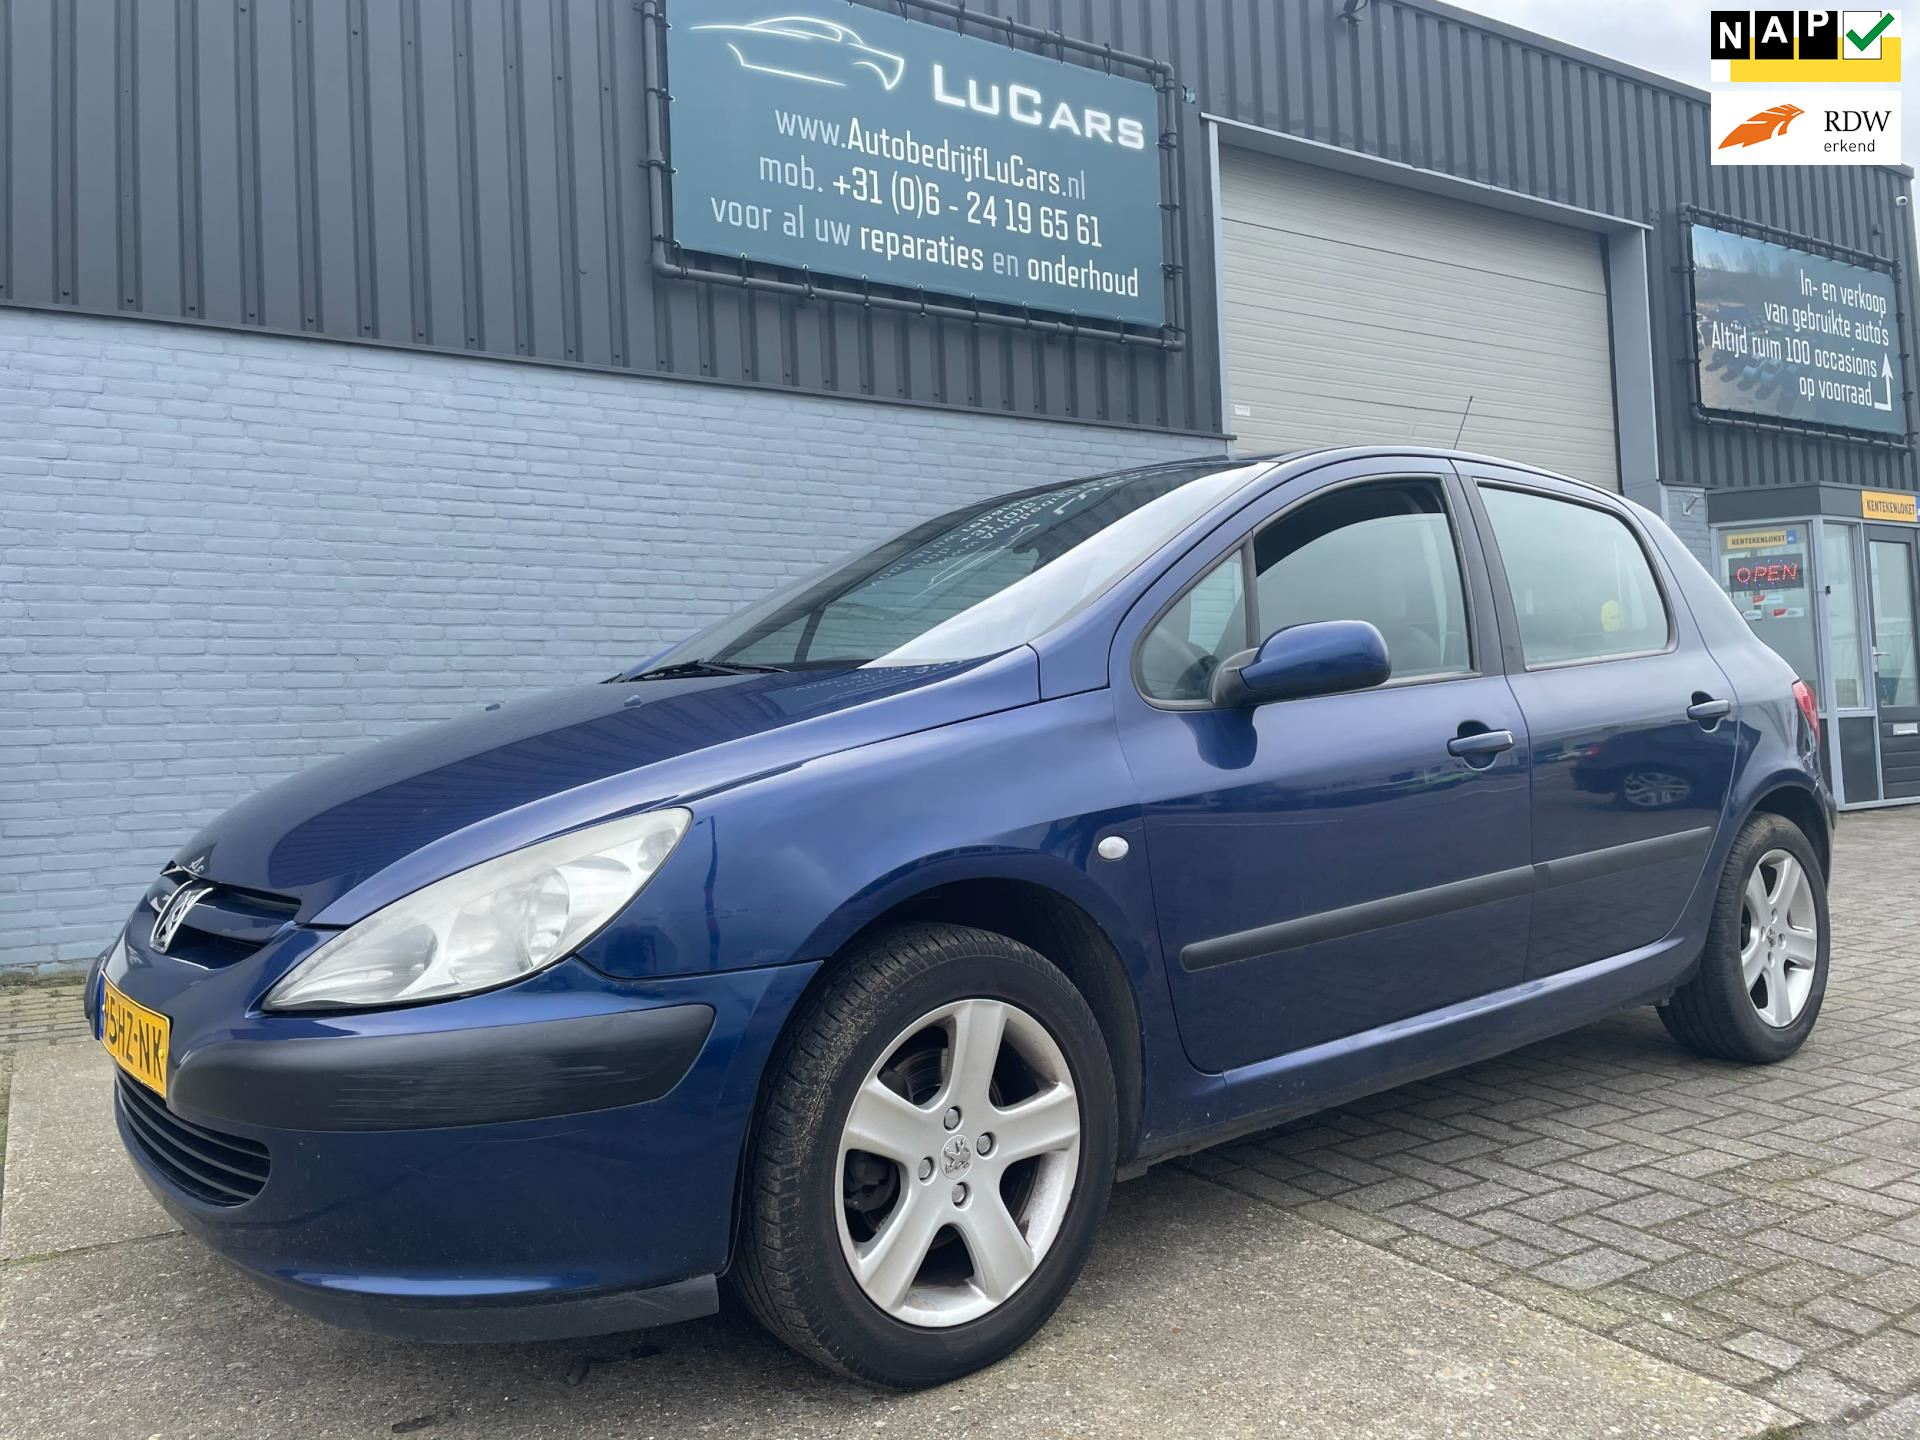 Peugeot 307 occasion - LuCars